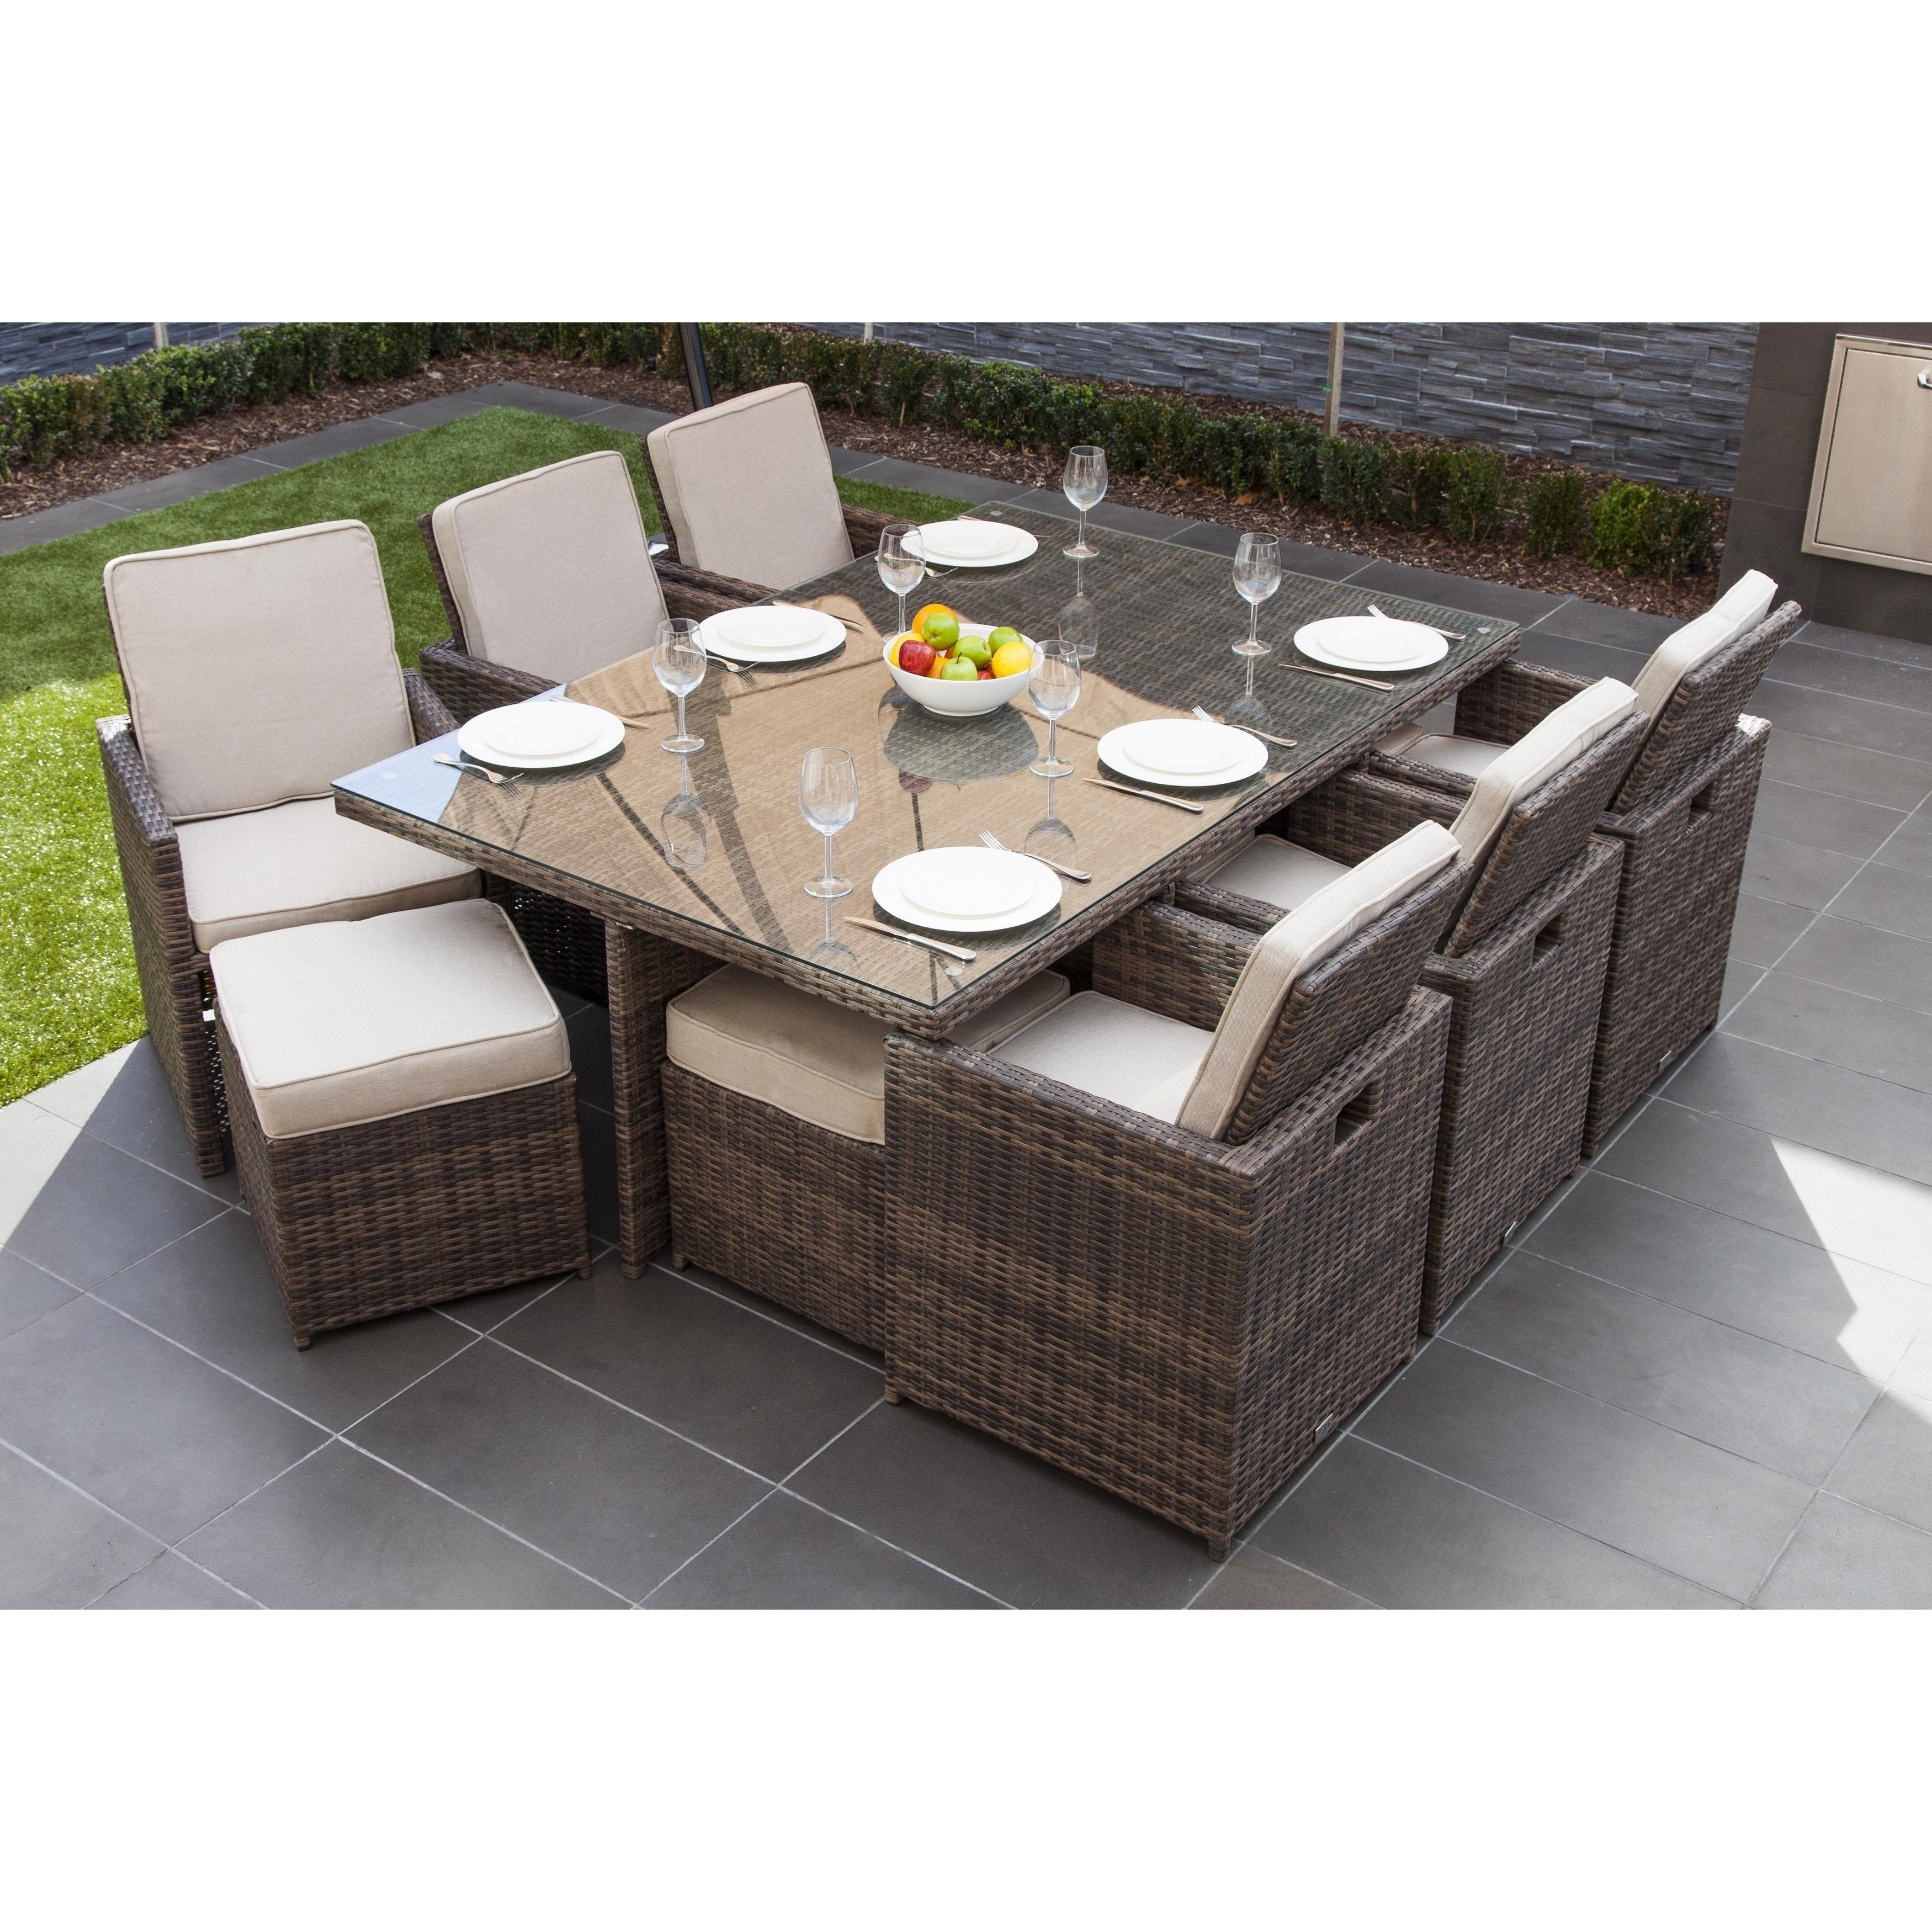 2017 Wicker And Glass Dining Tables Within Shop Malta 11 Piece Outdoor Wicker Dining Table And Cushion Set (View 2 of 25)